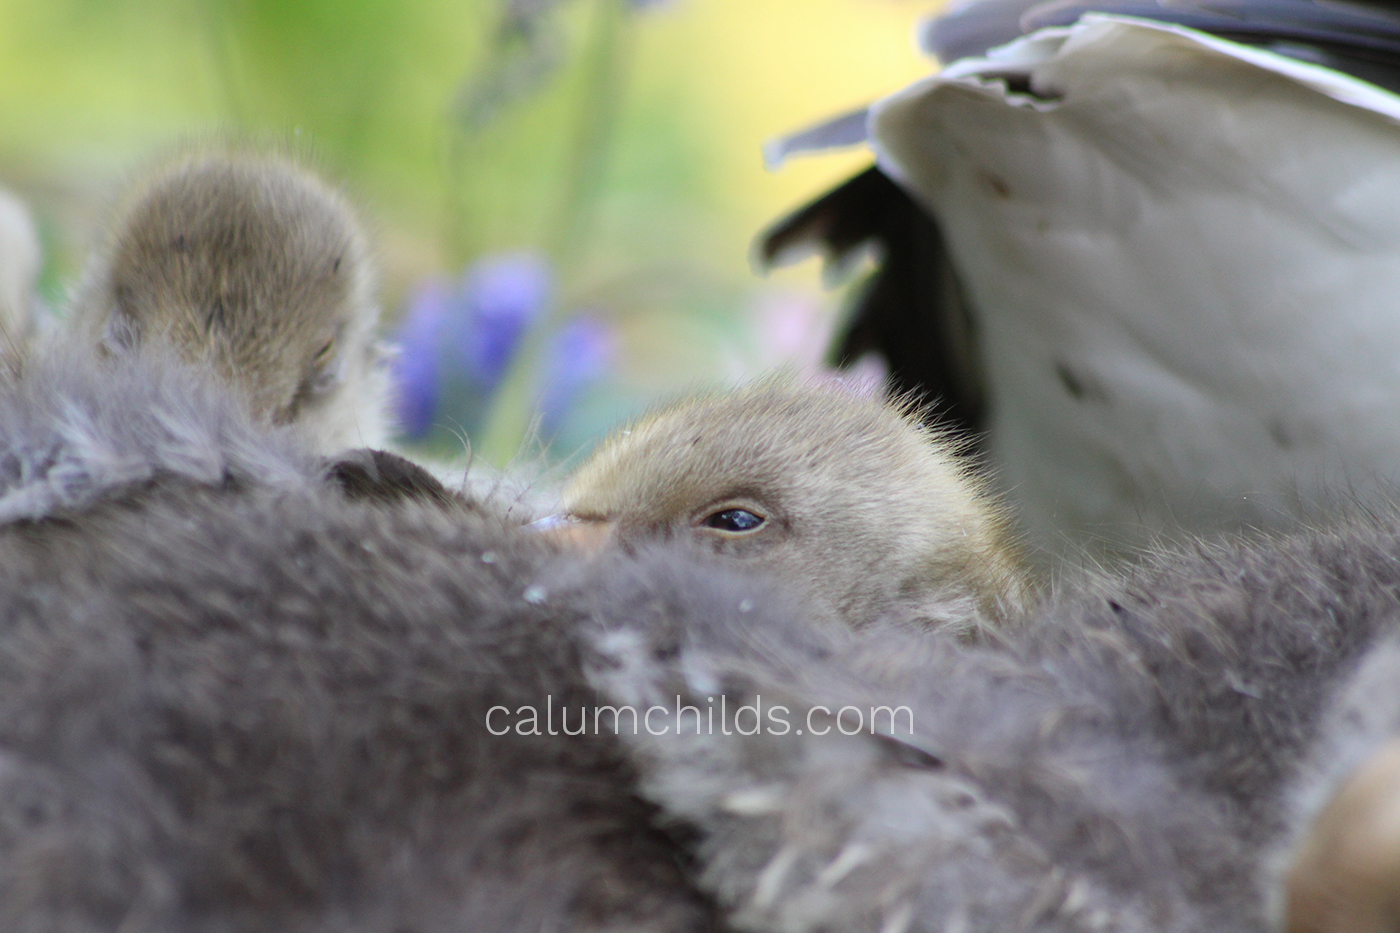 A goose chick wakes up from it's sleep, amongst many other chicks